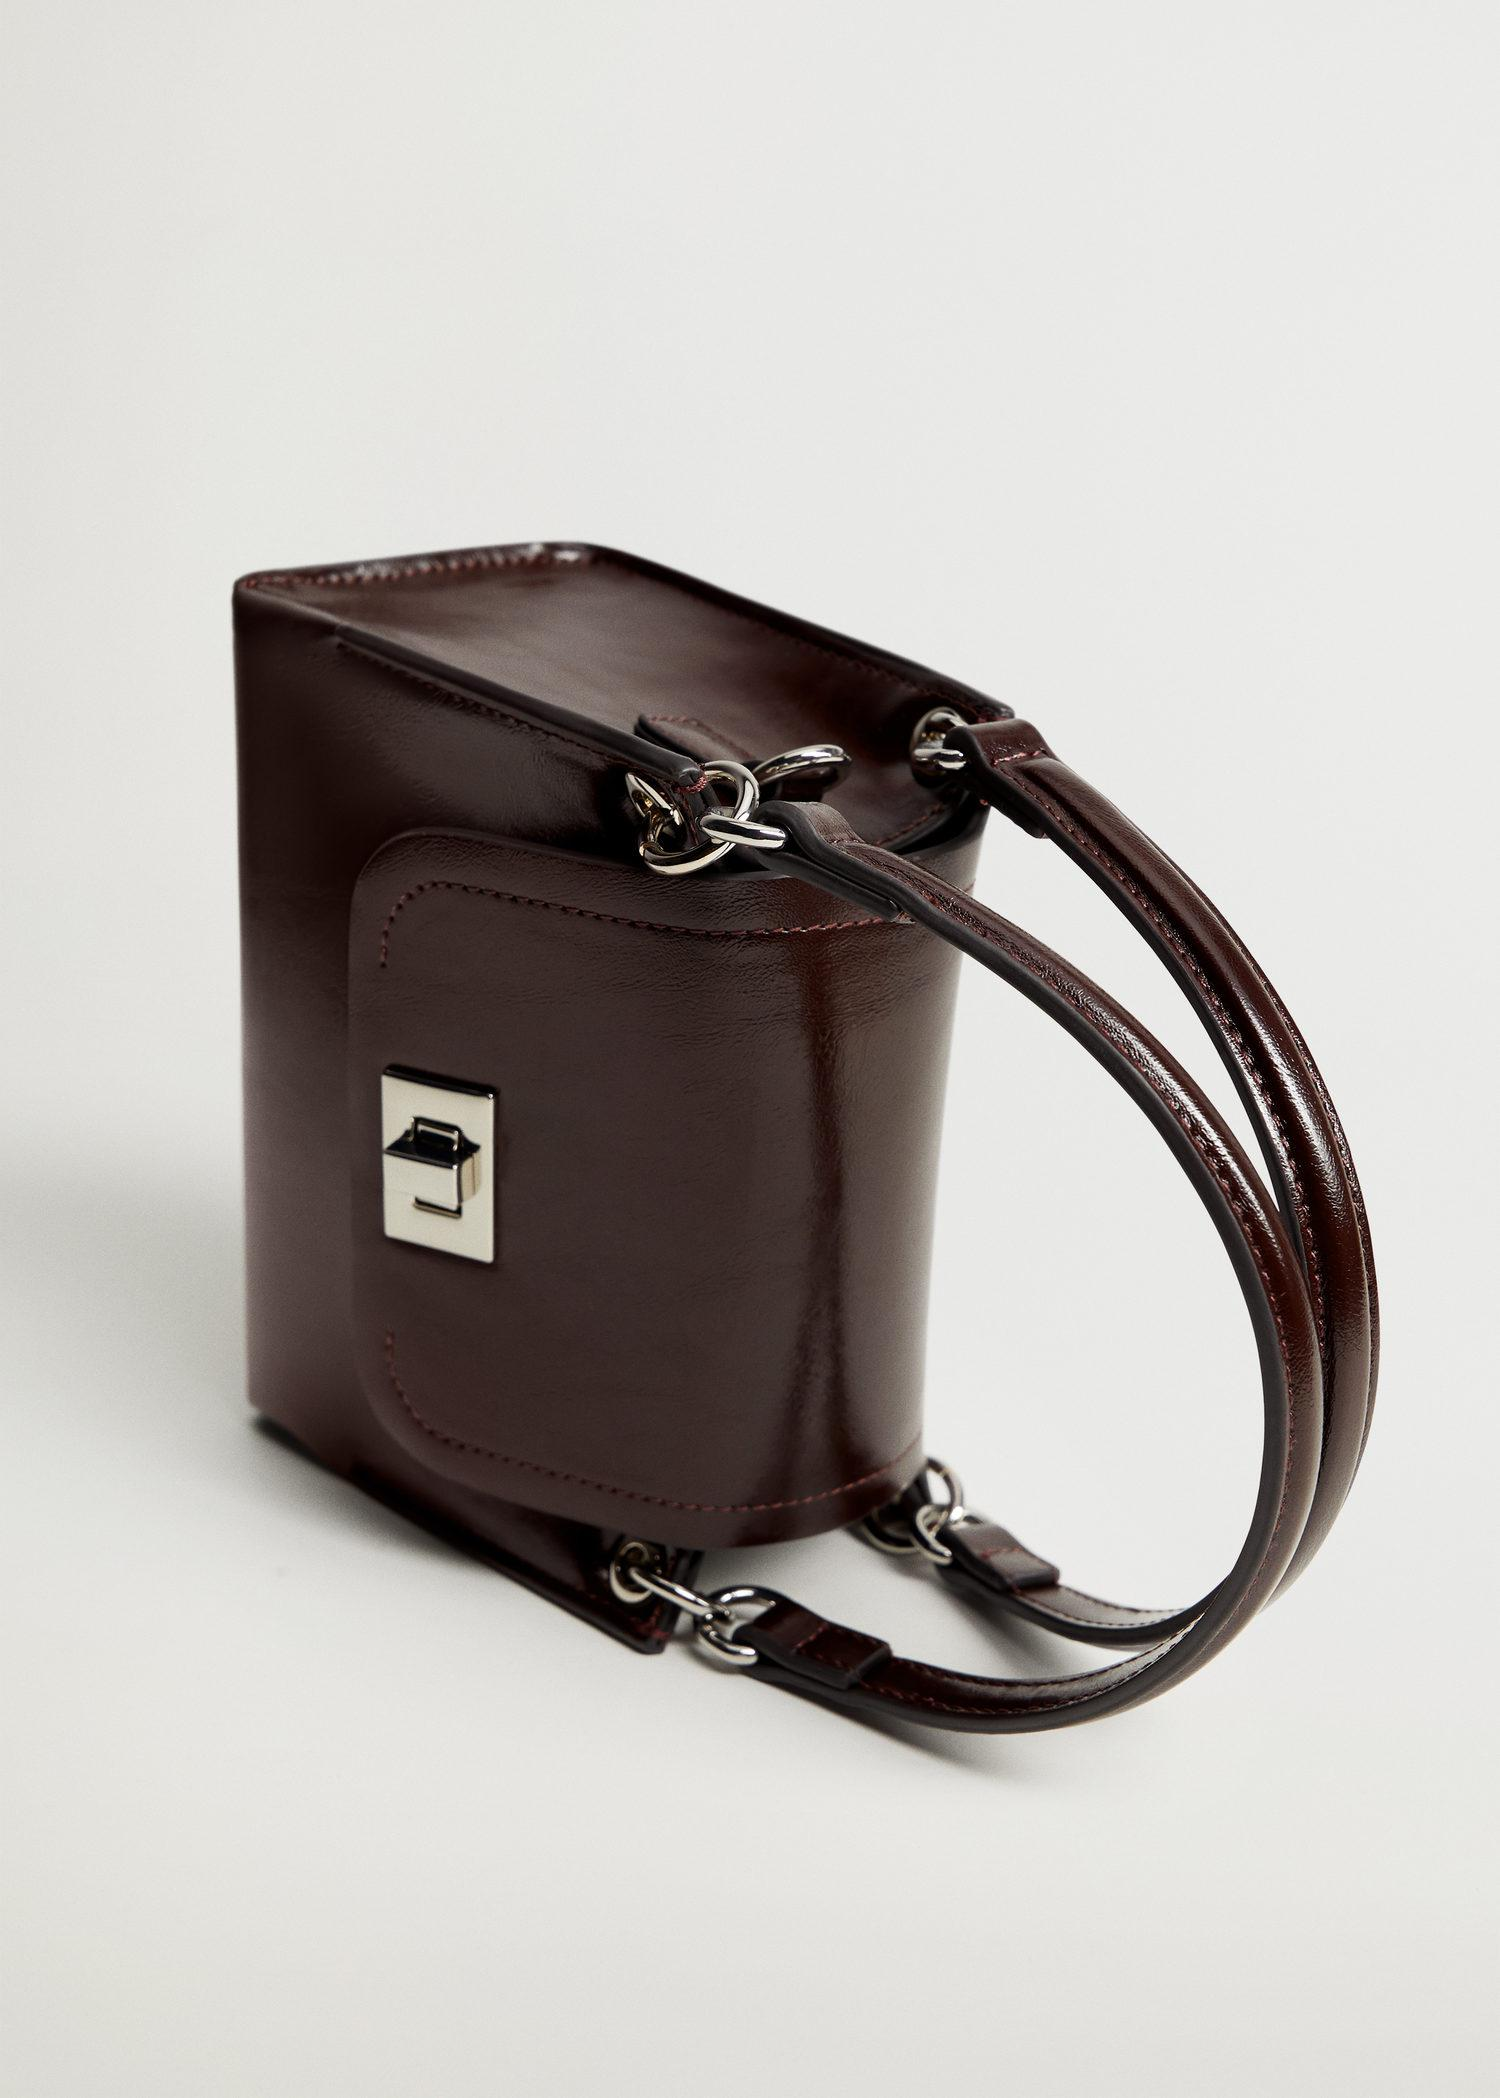 Double strap bag with flap 1